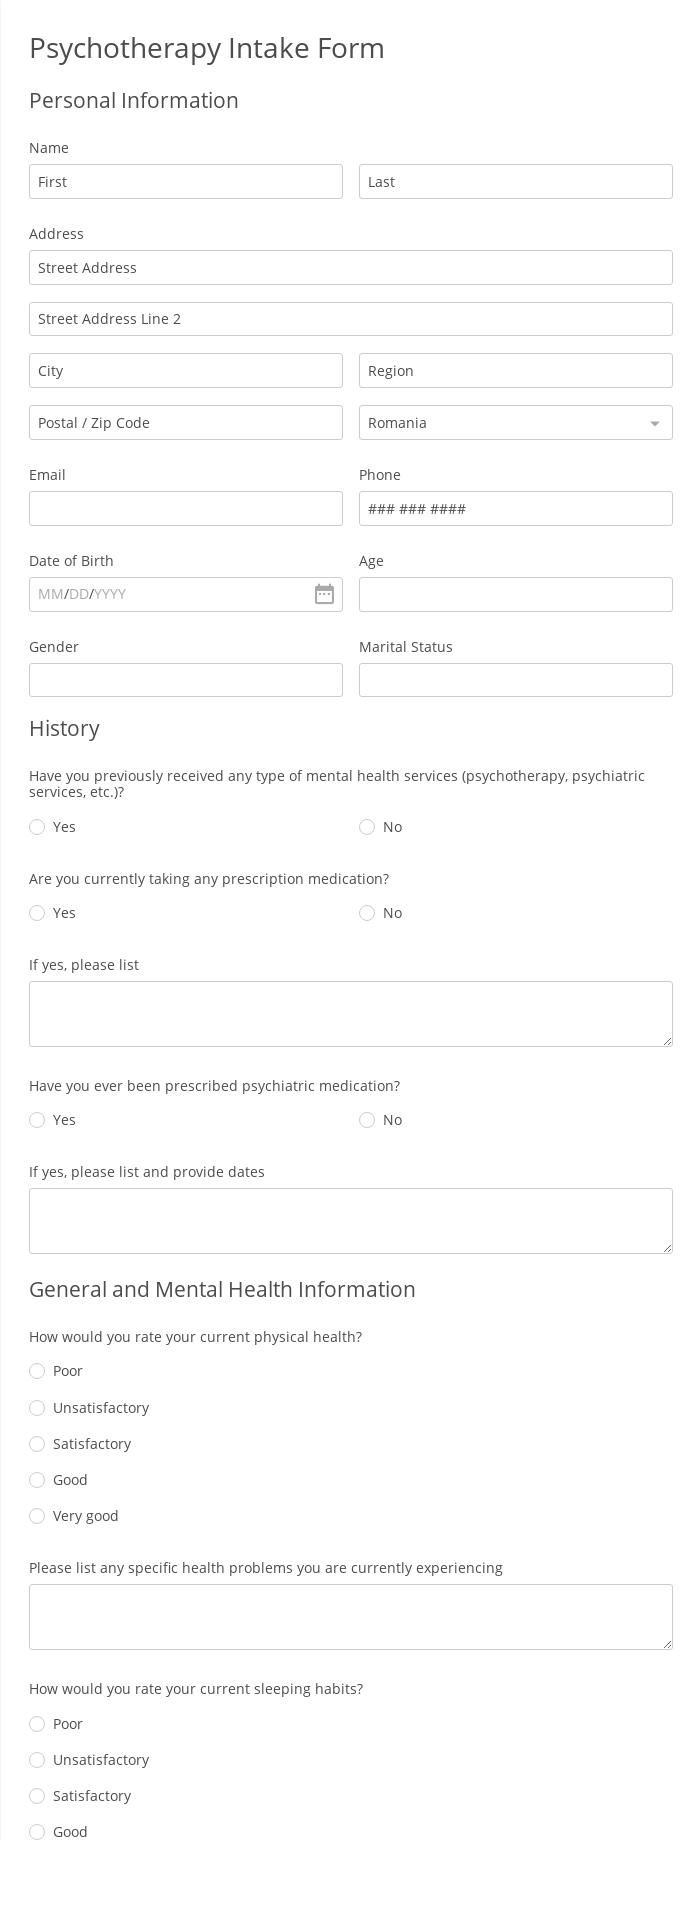 Psychotherapy Intake Form